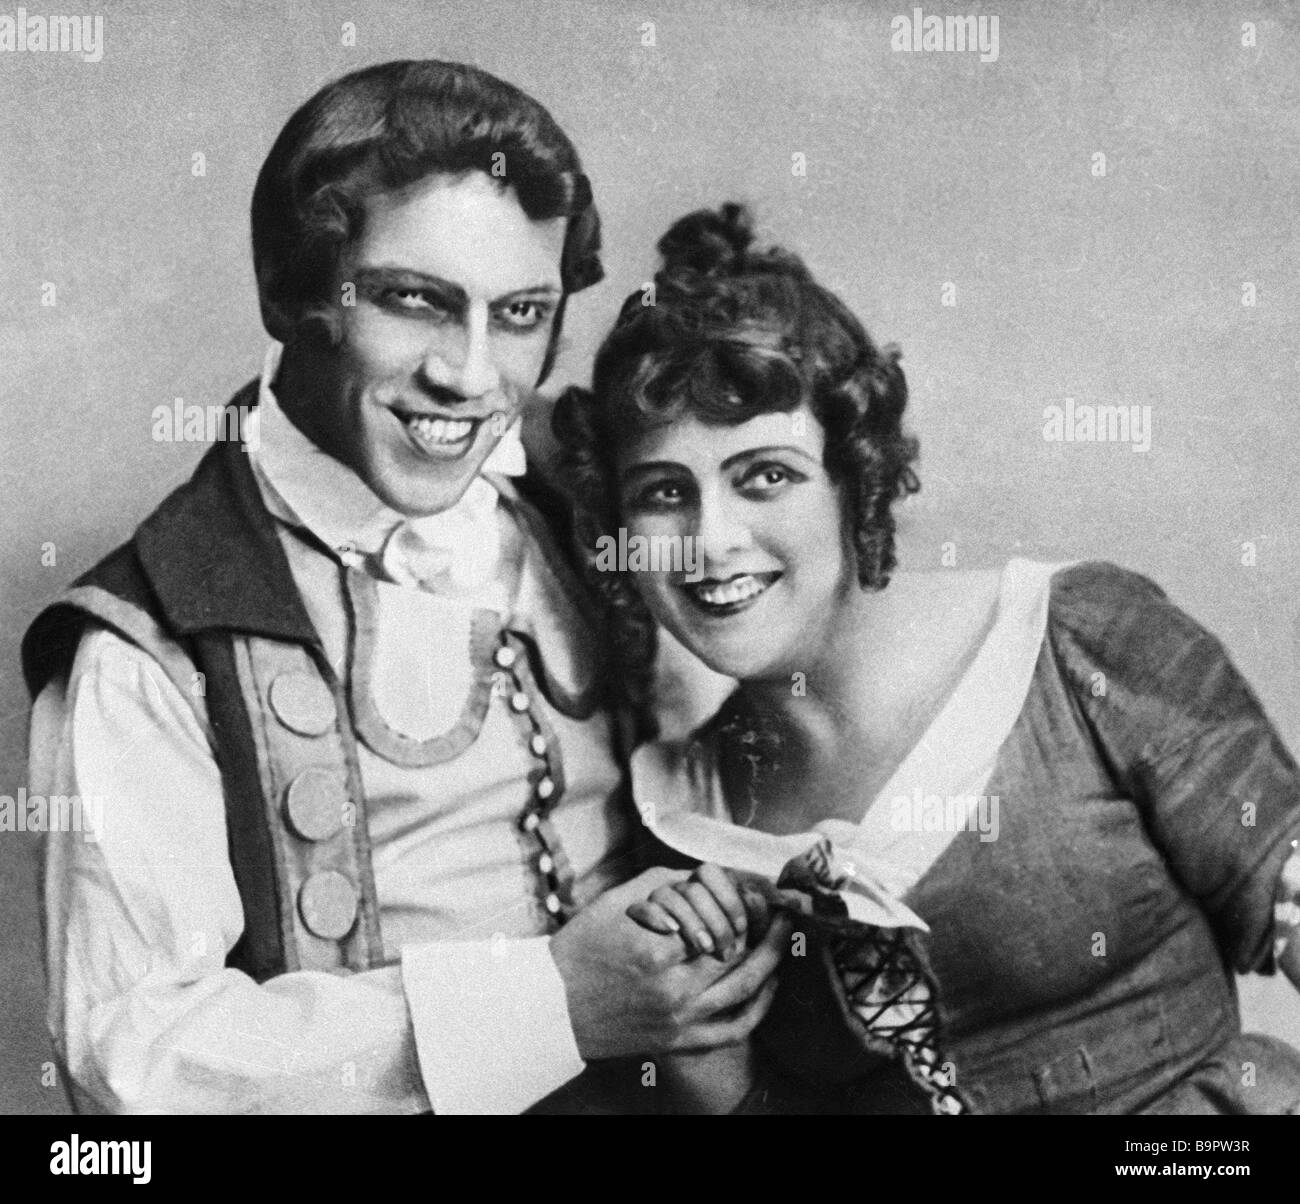 Beaumarchais La Folle journee ou Le Mariage de Figaro on at the Moscow Arts Theatre Olga Androvskaya as Suzanne - Stock Image